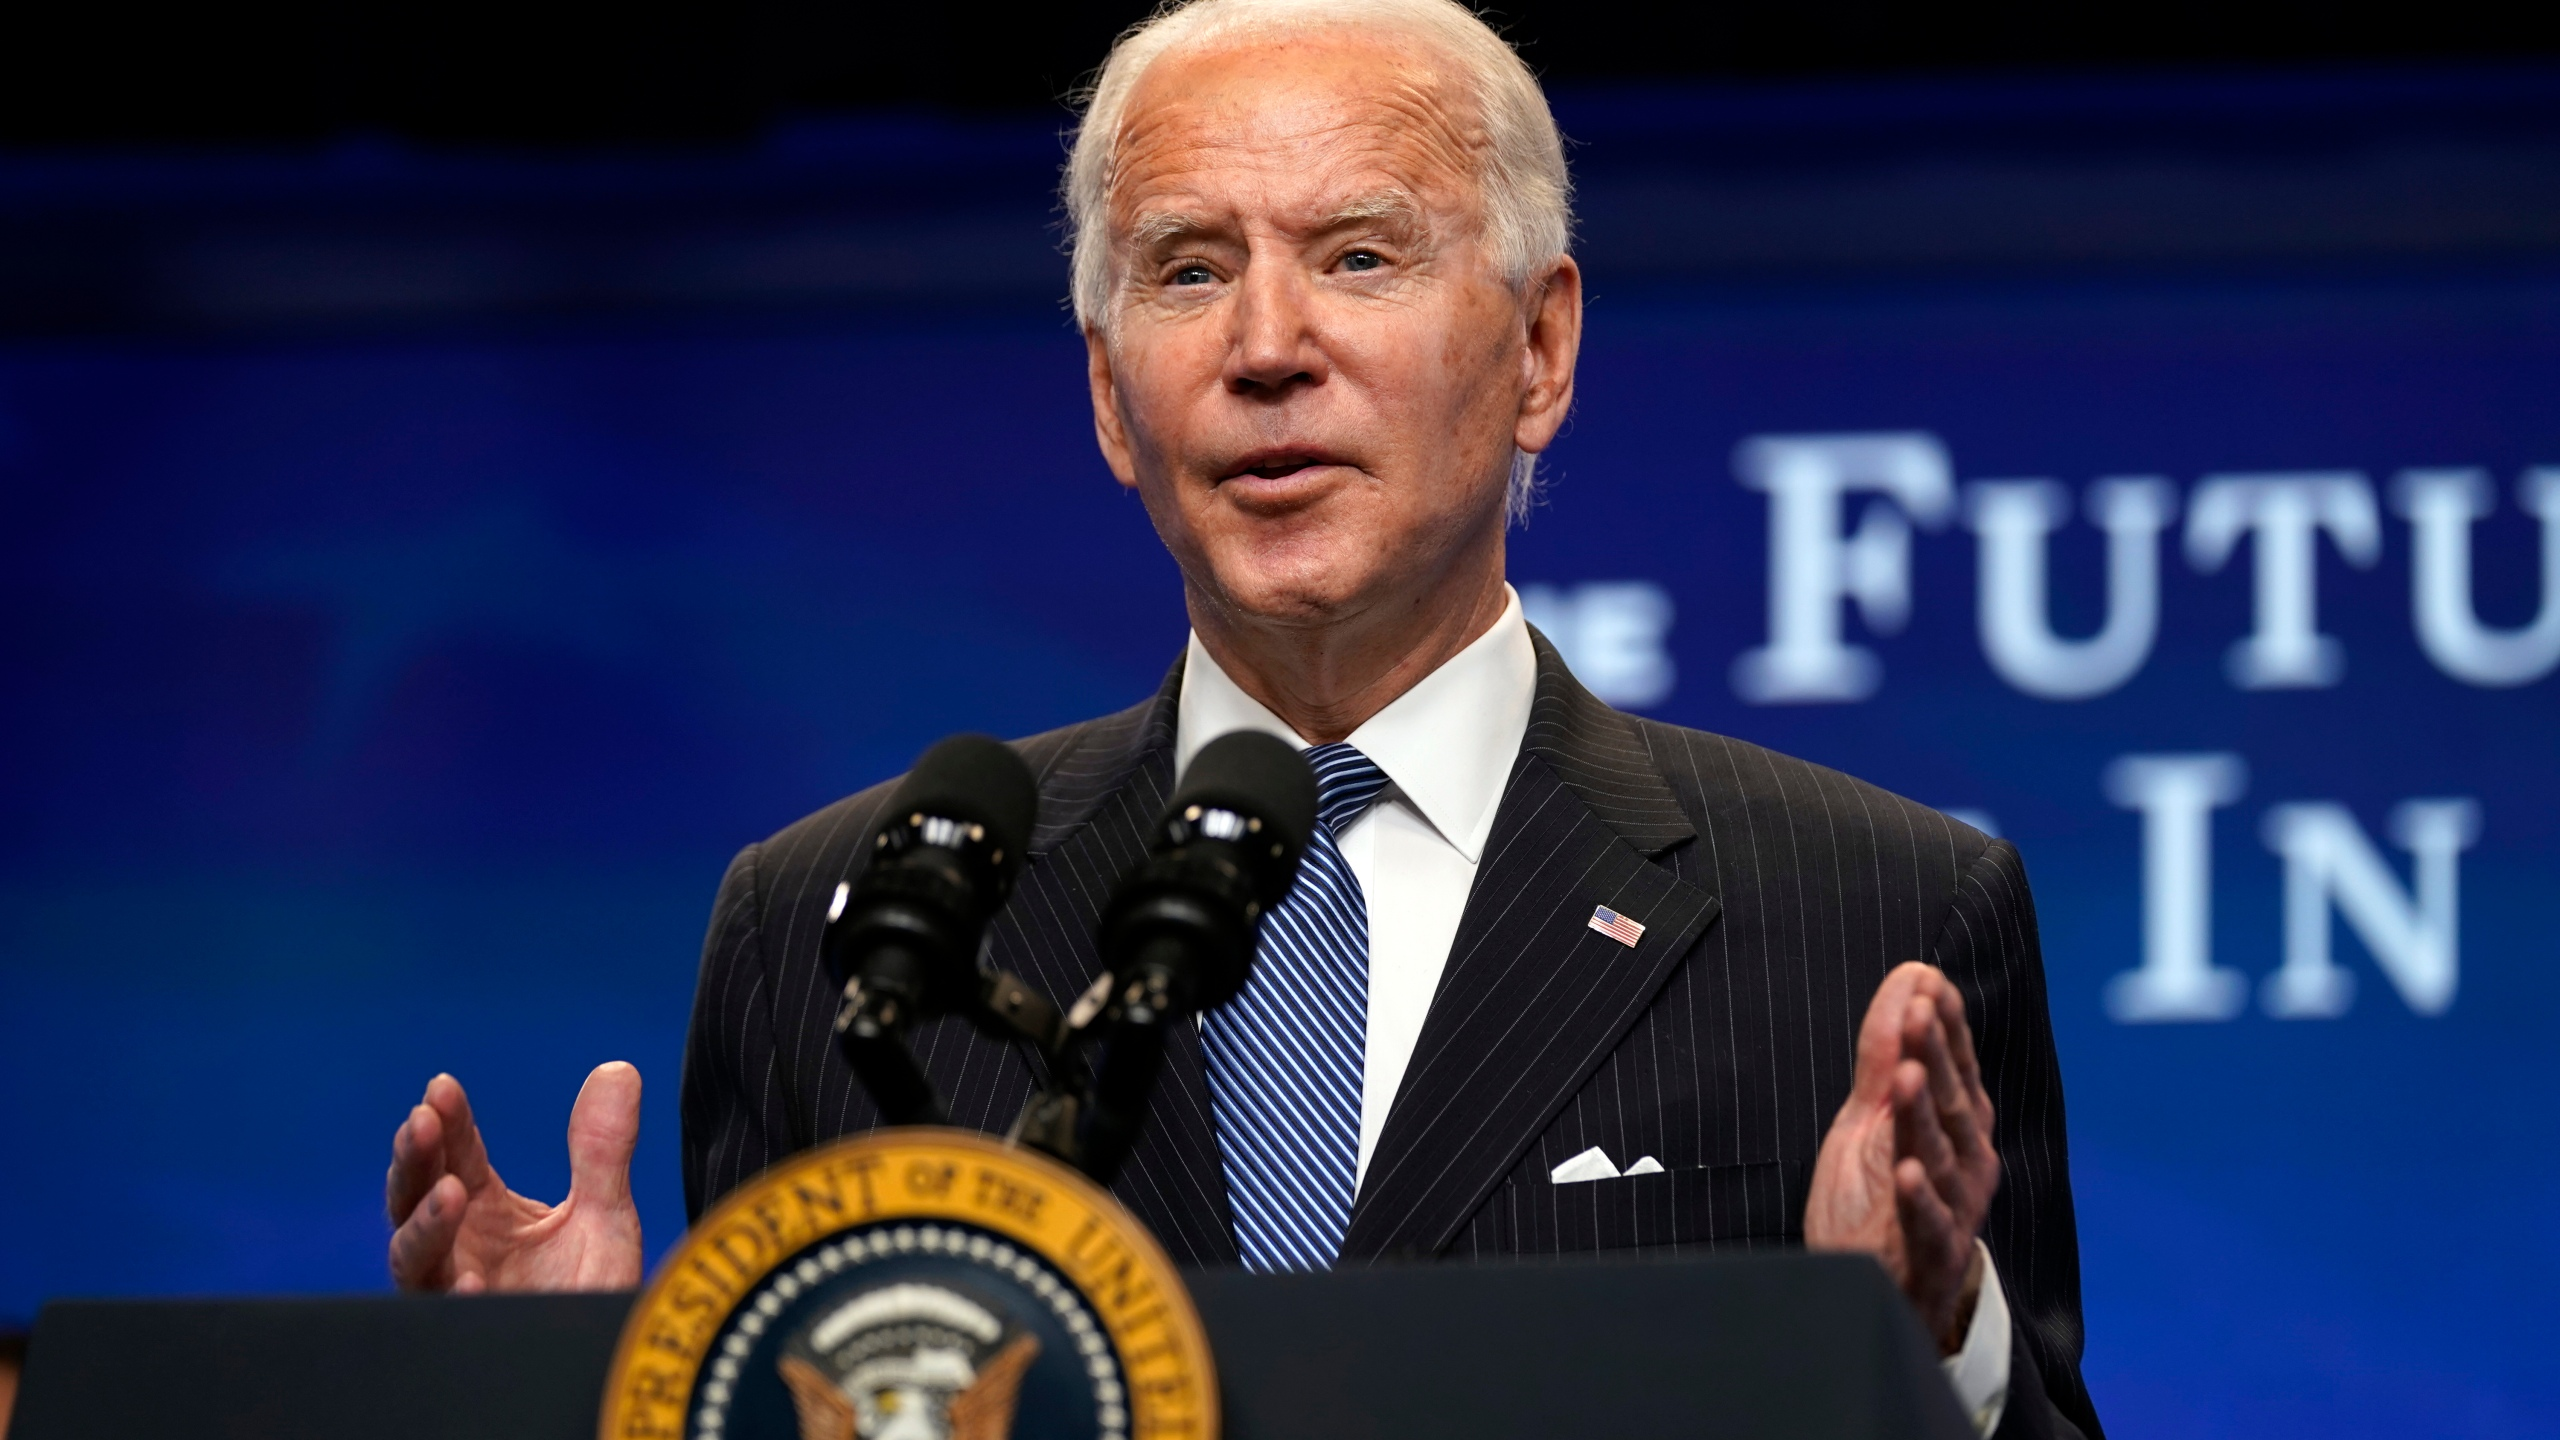 President Joe Biden speaks during an event on American manufacturing, in the South Court Auditorium on the White House complex, on Jan. 25, 2021. (Evan Vucci / Associated Press)